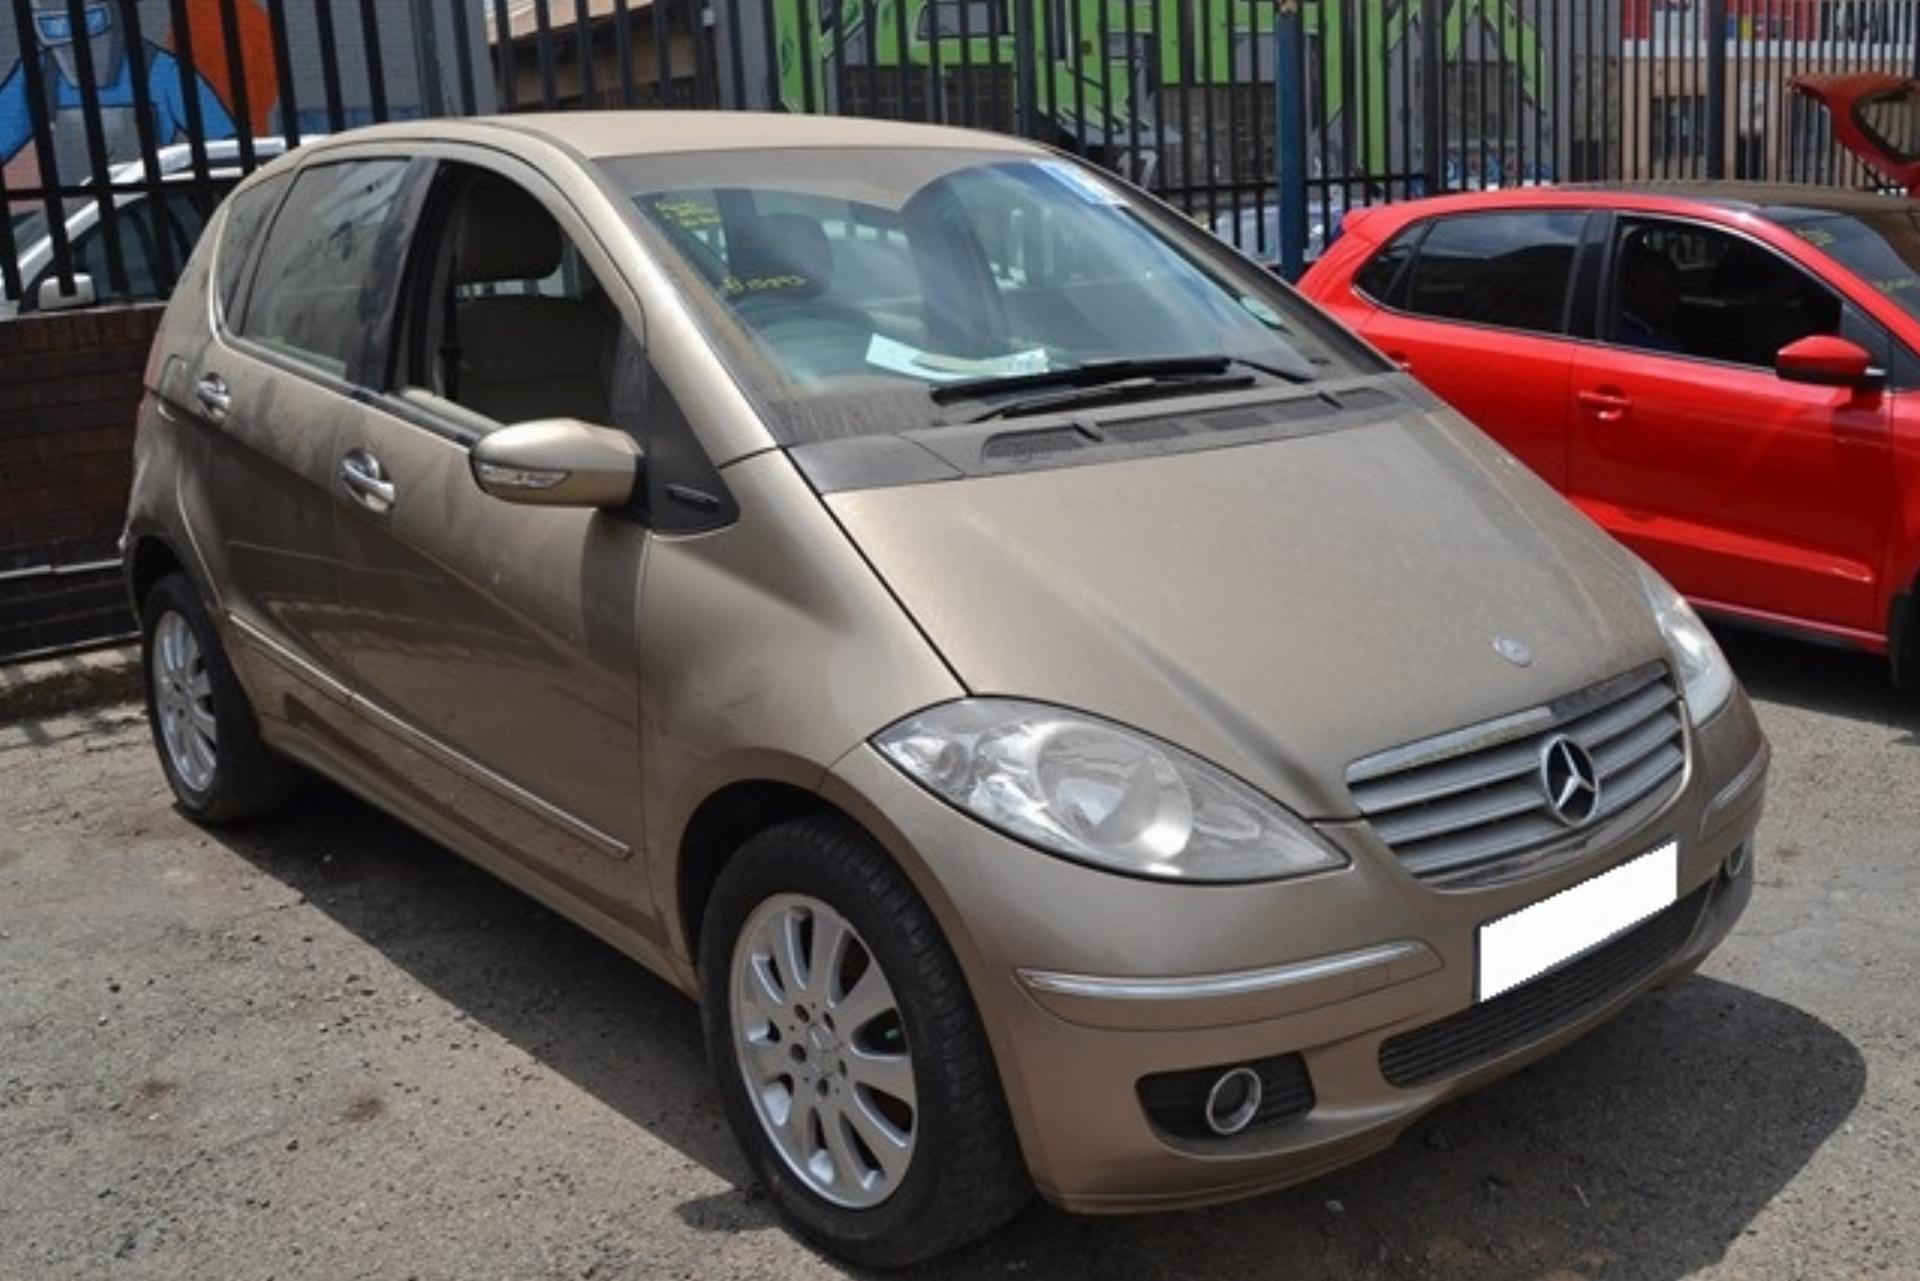 Repossessed Mercedes Benz A Class 200 2005 on auction ...